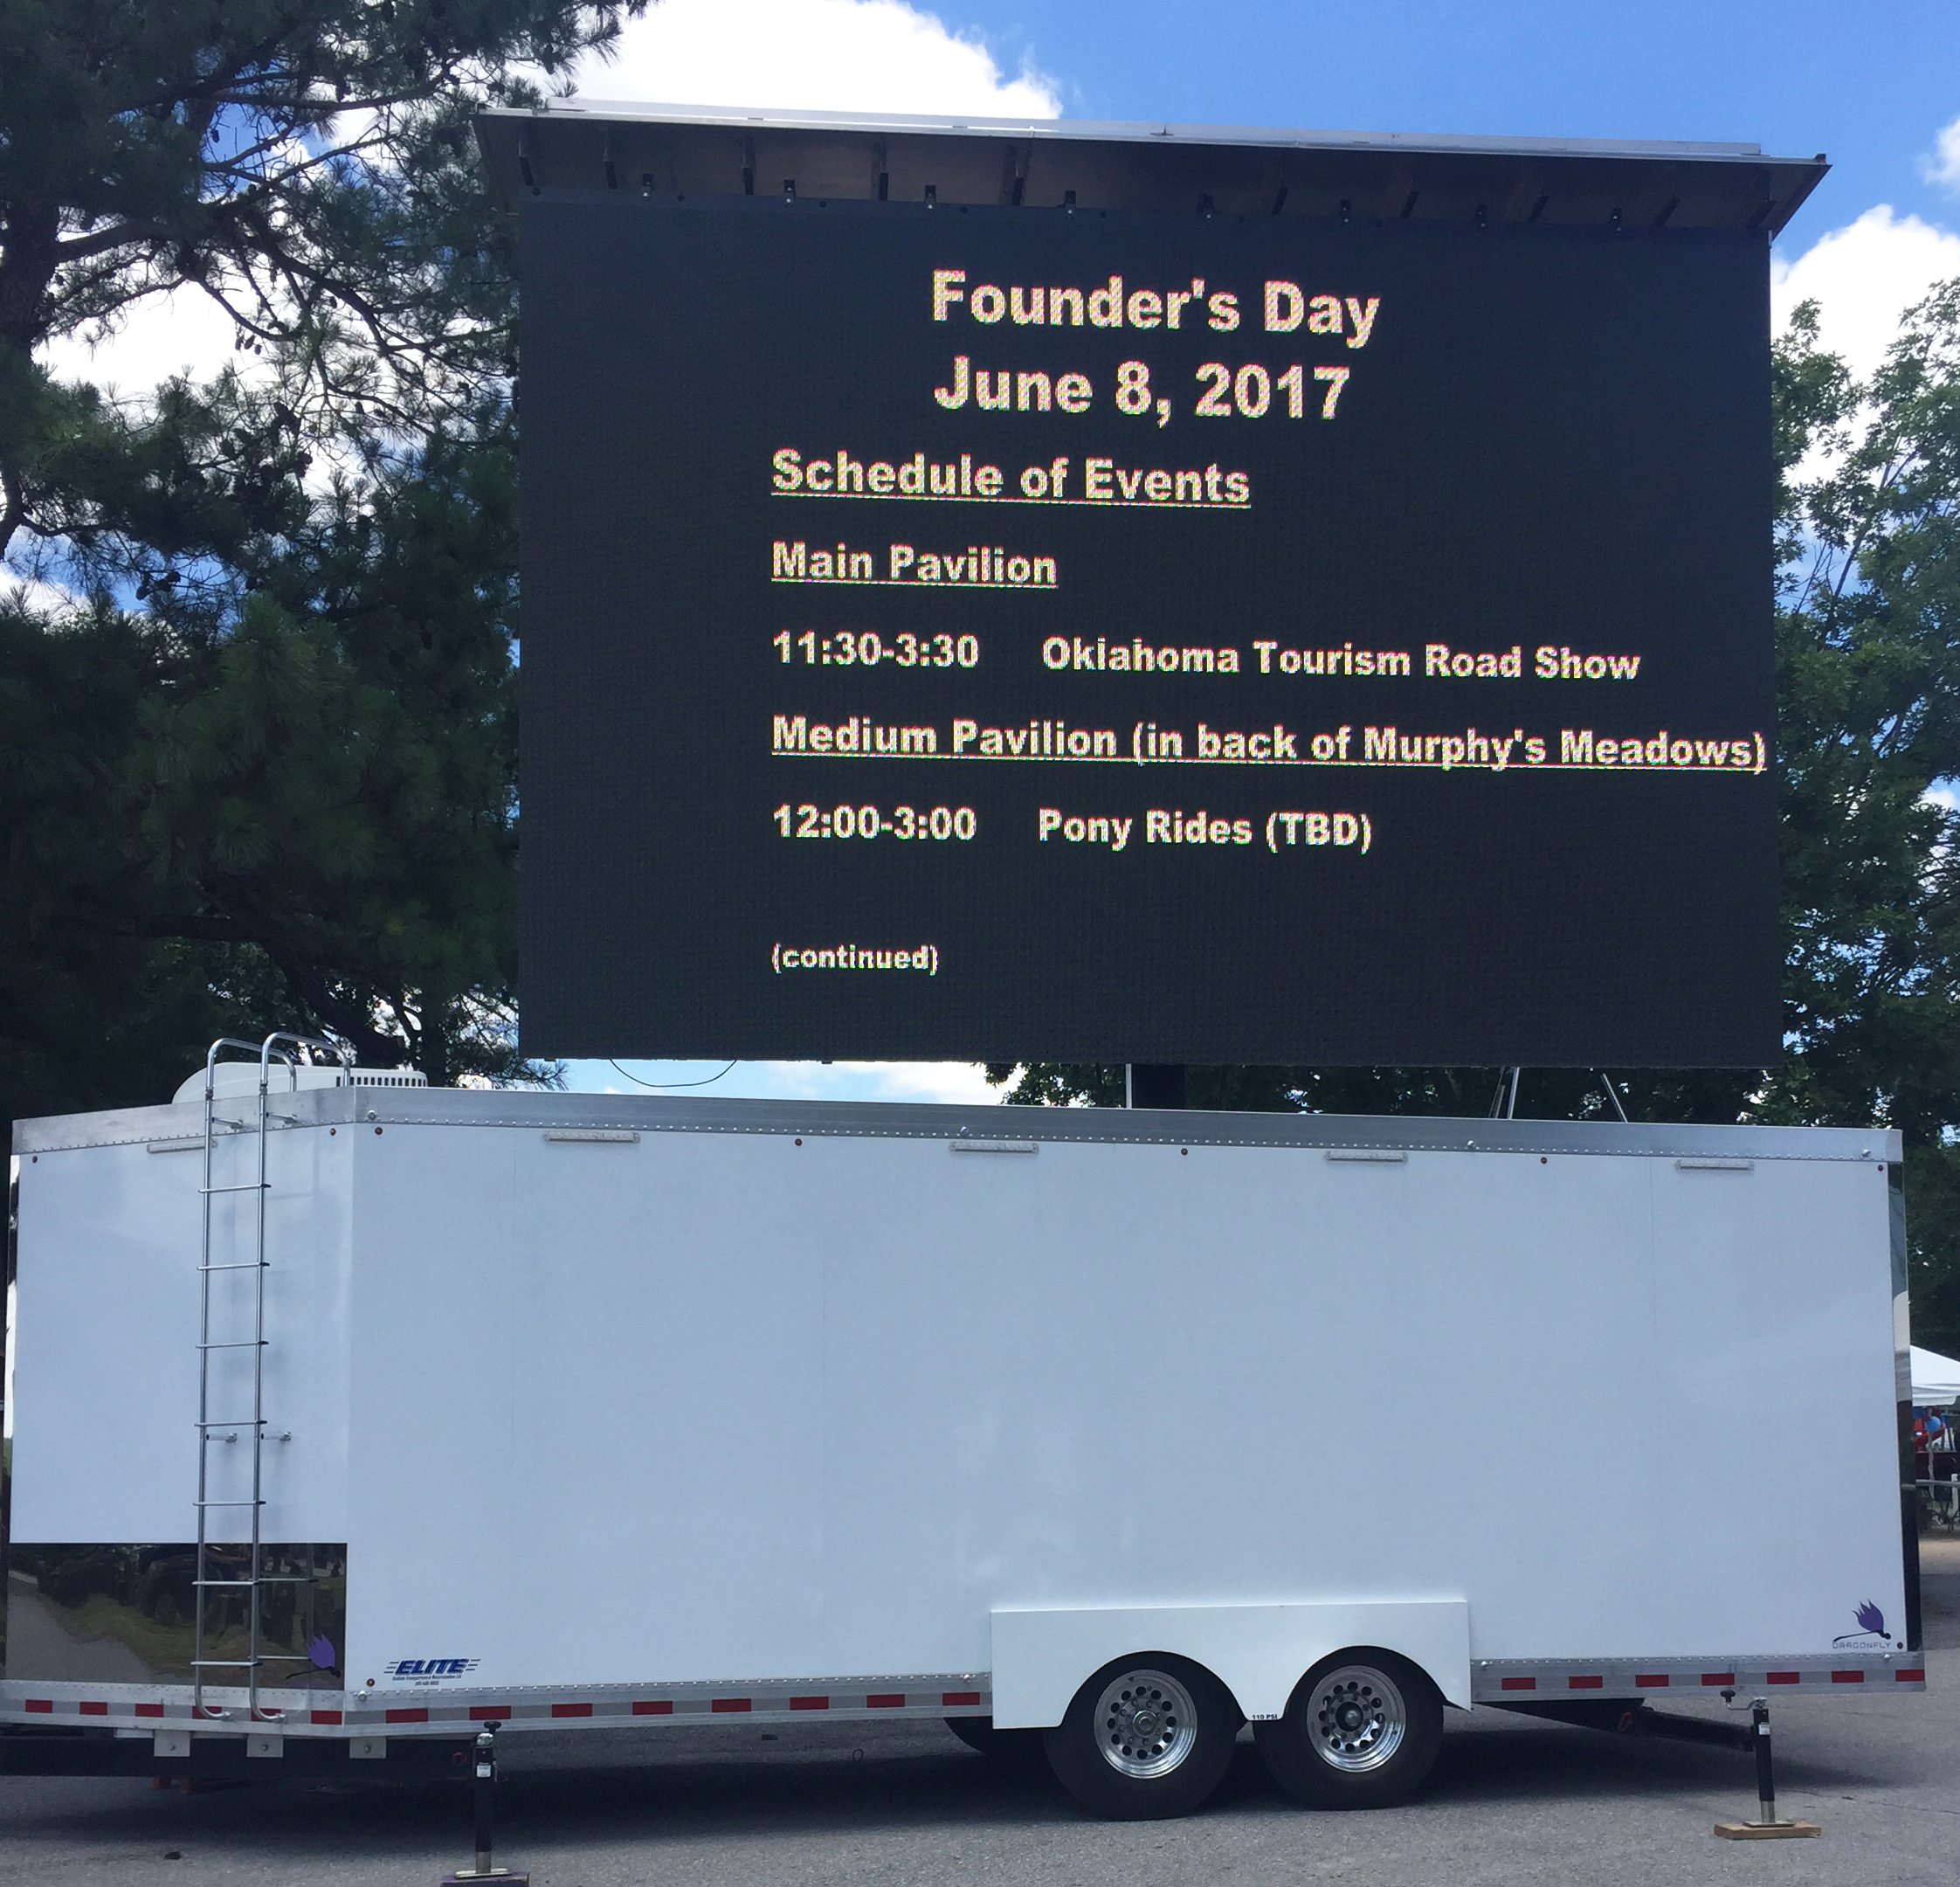 mobile jumbotron for messaging and traffic control